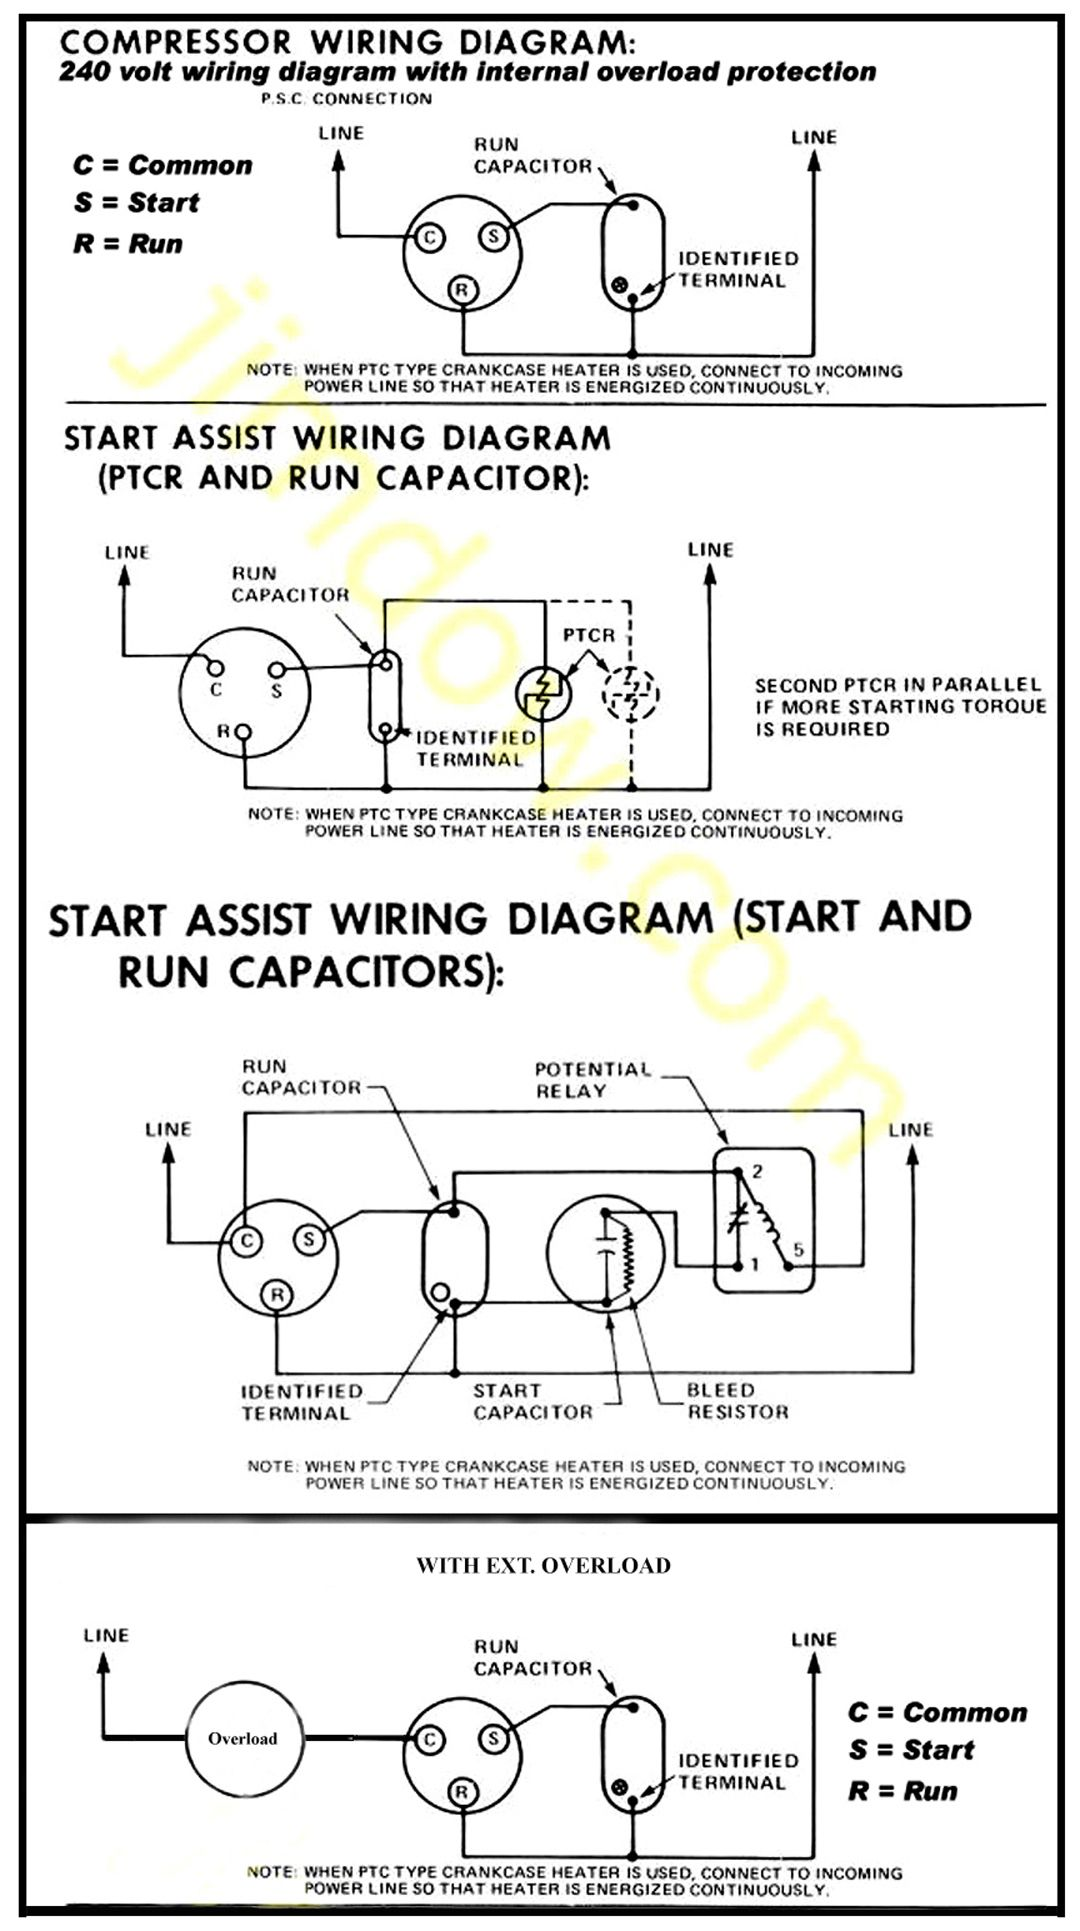 Wiring Diagram For 220 Volt Air Compressor Bookingritzcarlton Info In 2020 Refrigeration And Air Conditioning Hvac Air Conditioning Air Conditioner Compressor